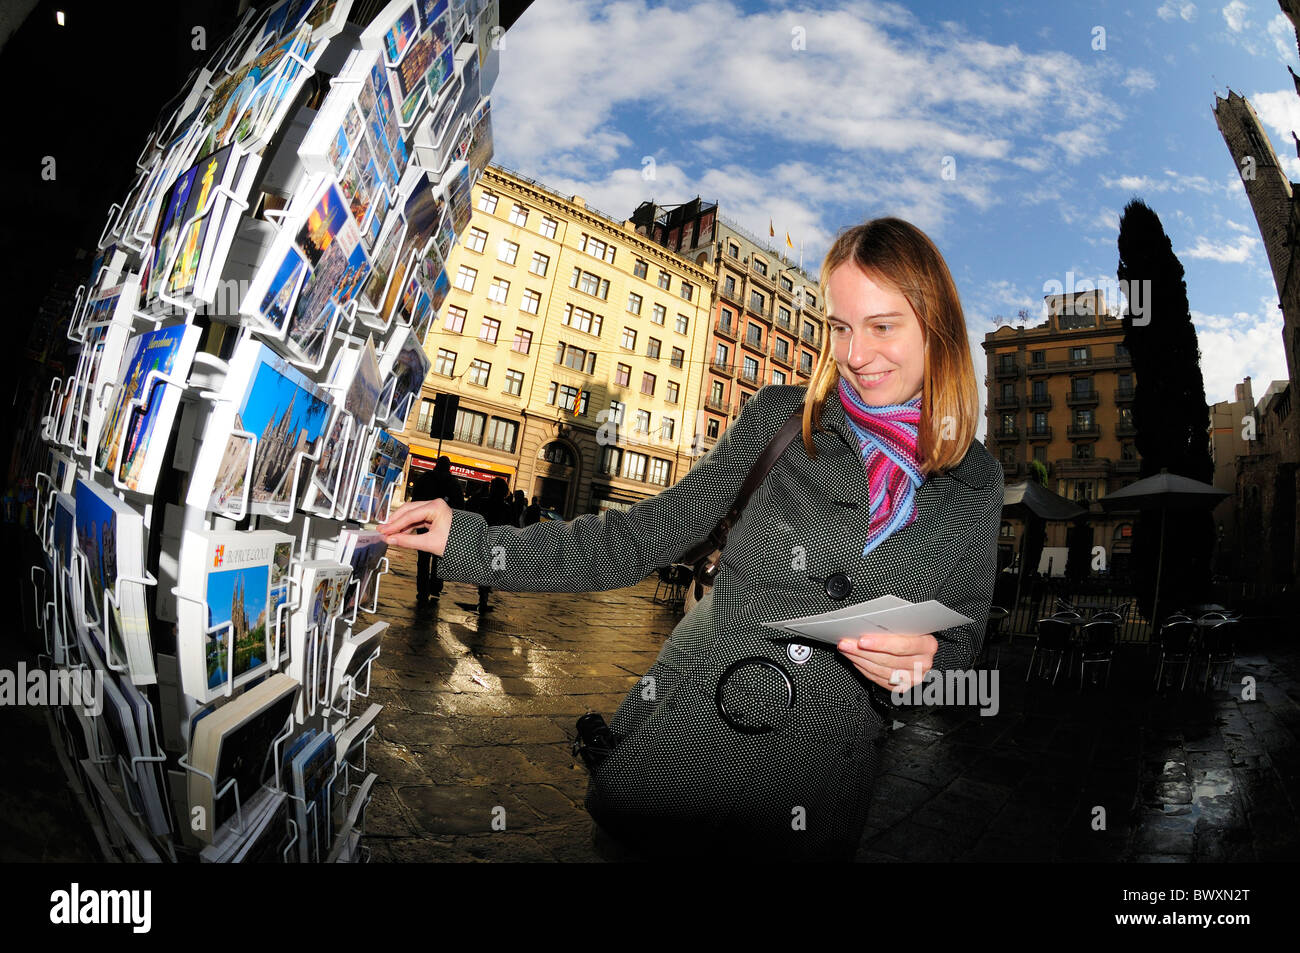 Young Woman Selecting Postcards, Barcelona, UK - Stock Image